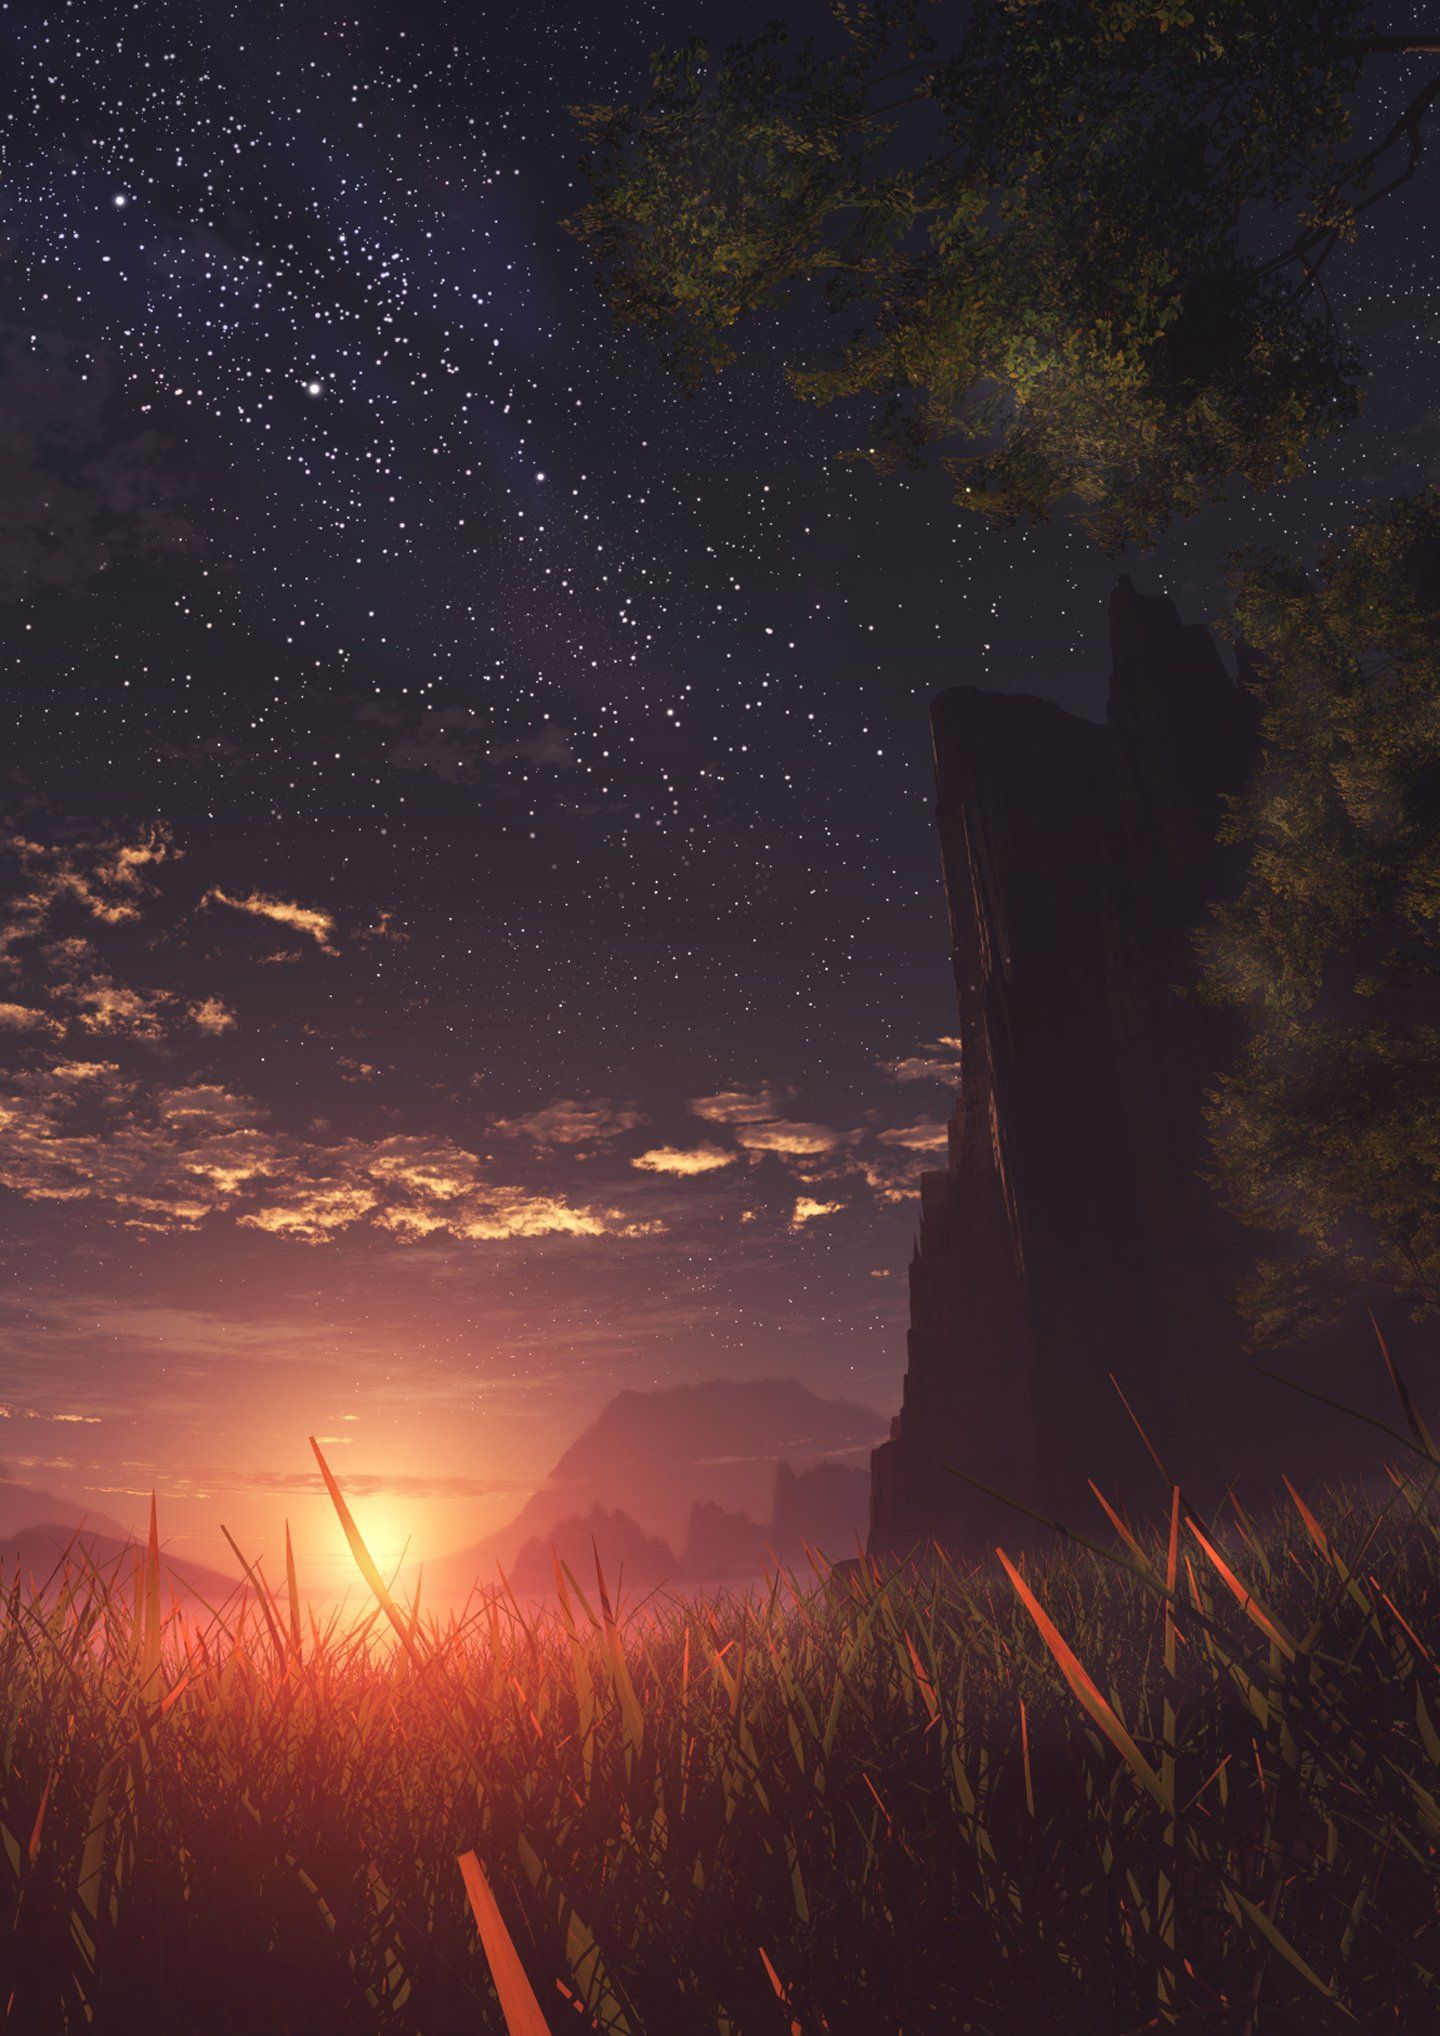 Anime Landscape Phone Wallpapers - Top Free Anime ...